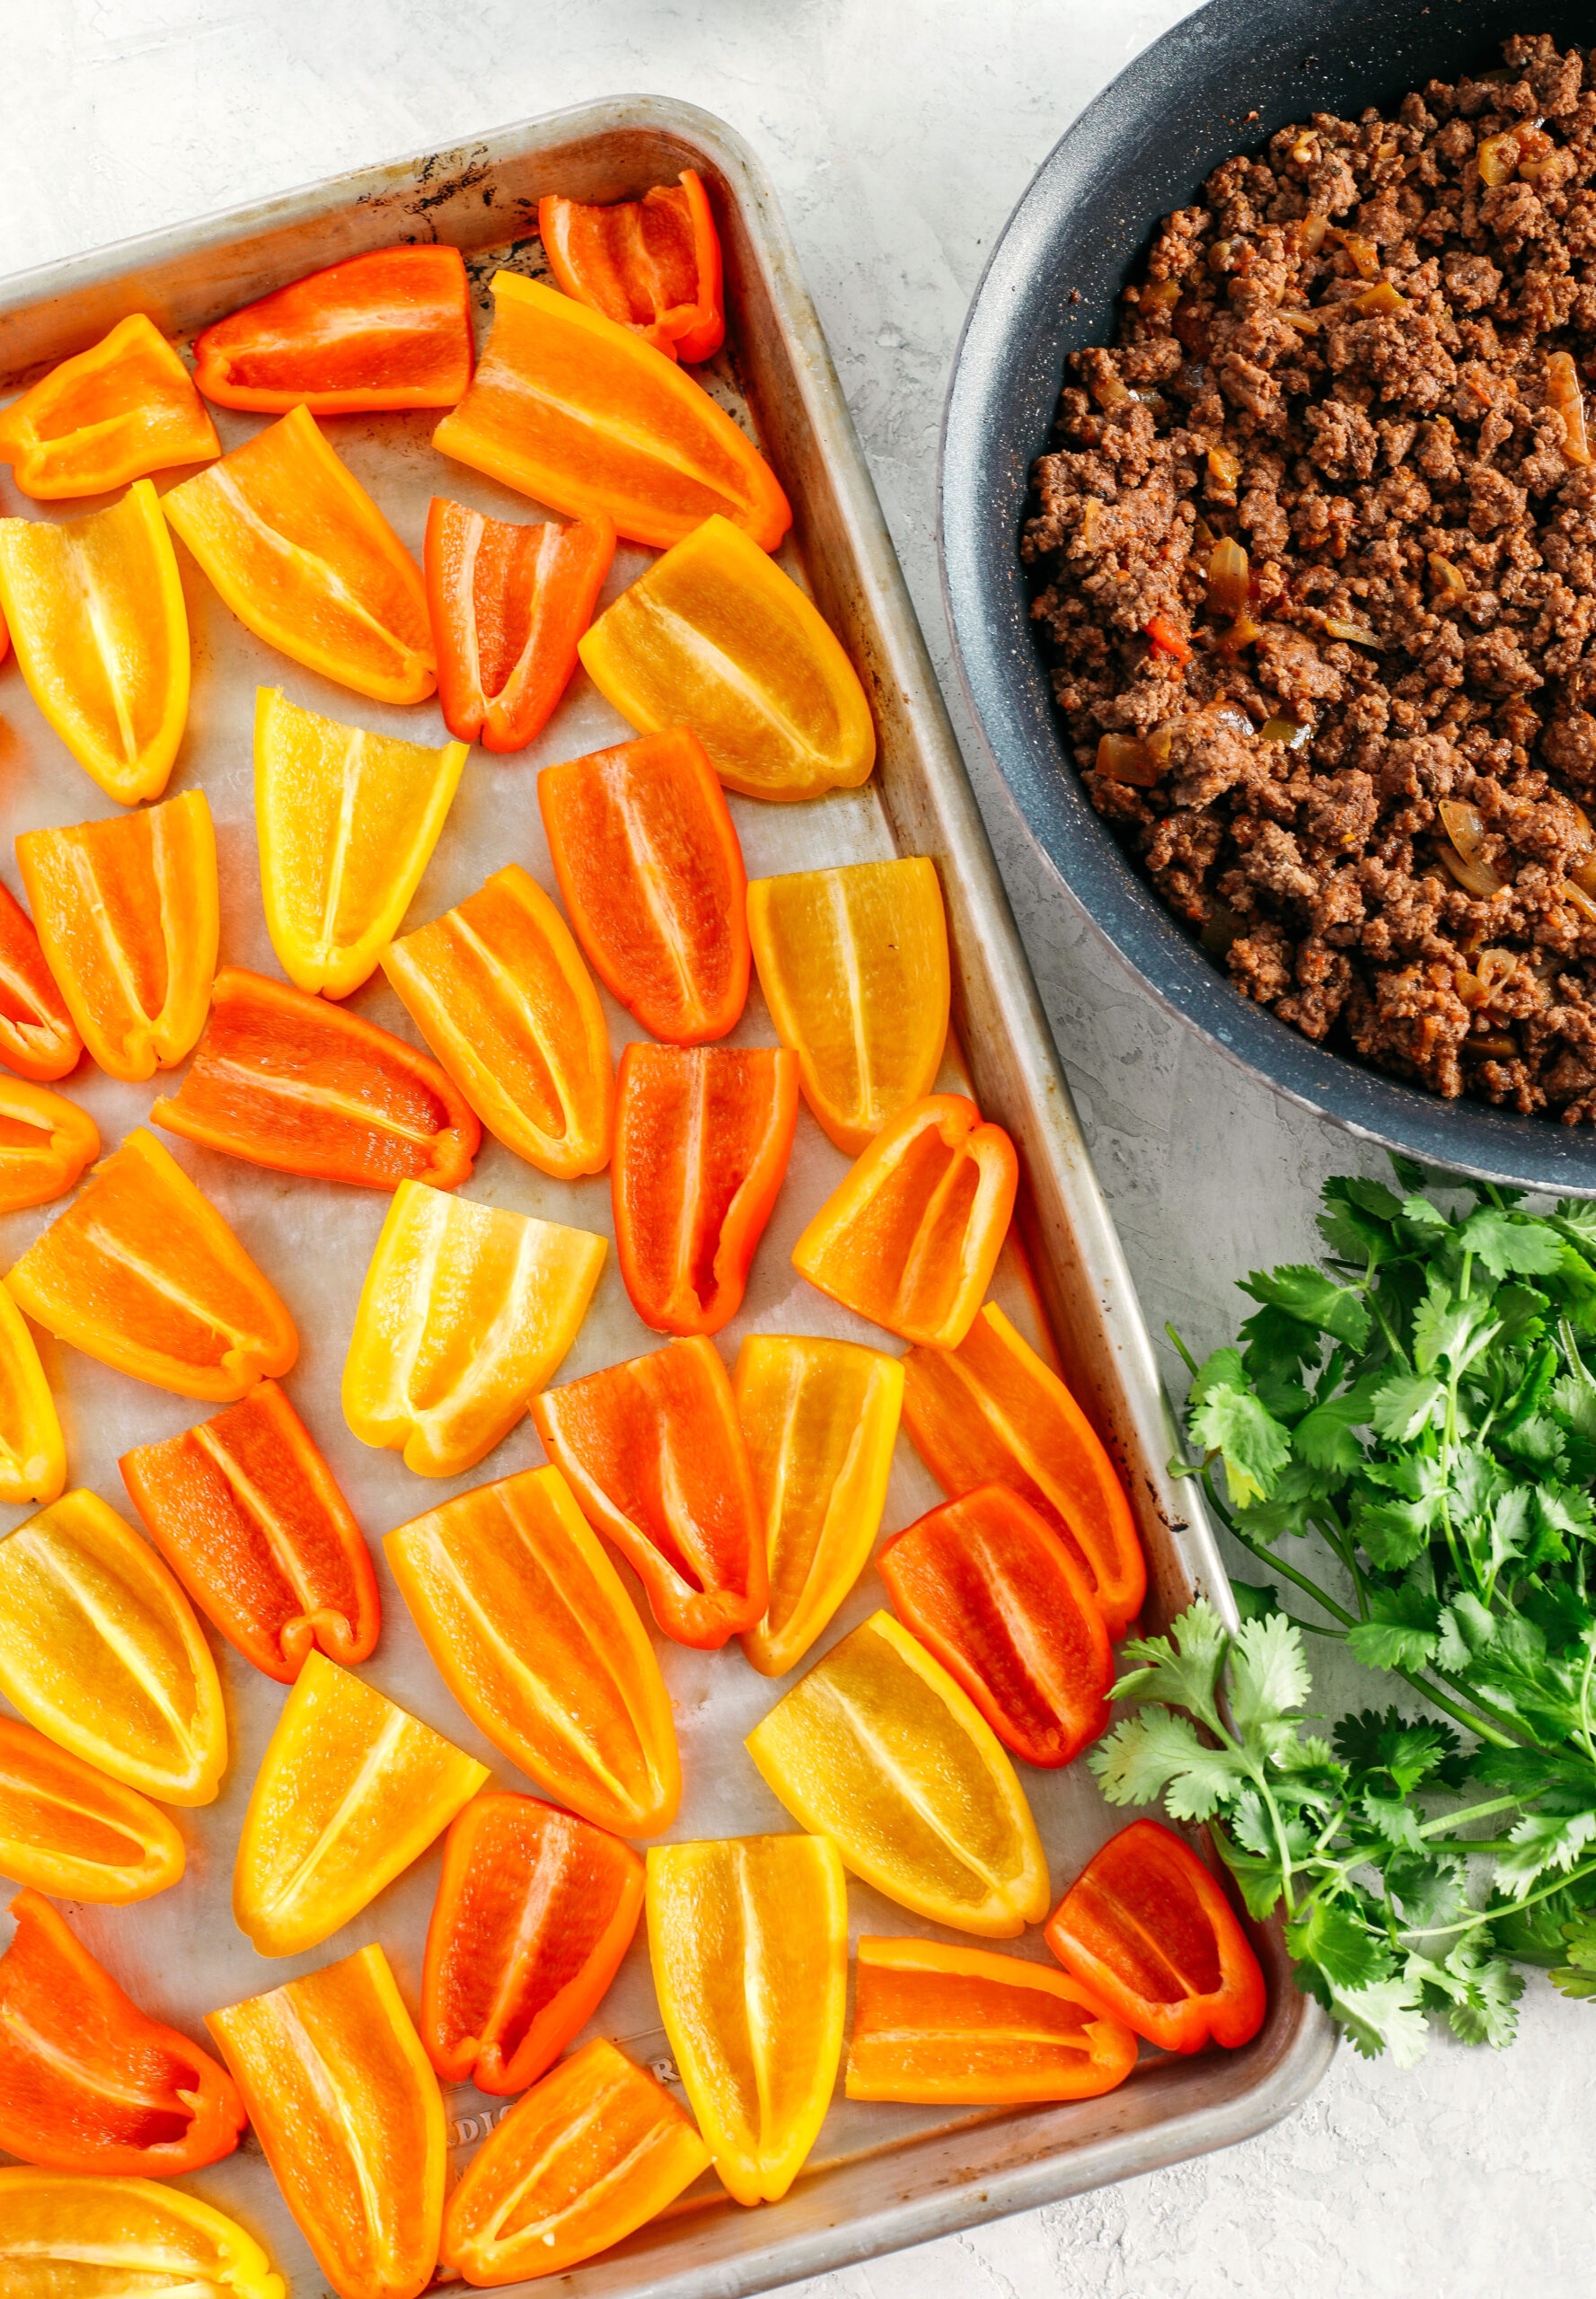 These Sheet Pan Loaded Bell Pepper Nachos are packed with all your favorite flavors and fun toppings making them the perfect low carb appetizer to enjoy on game day!